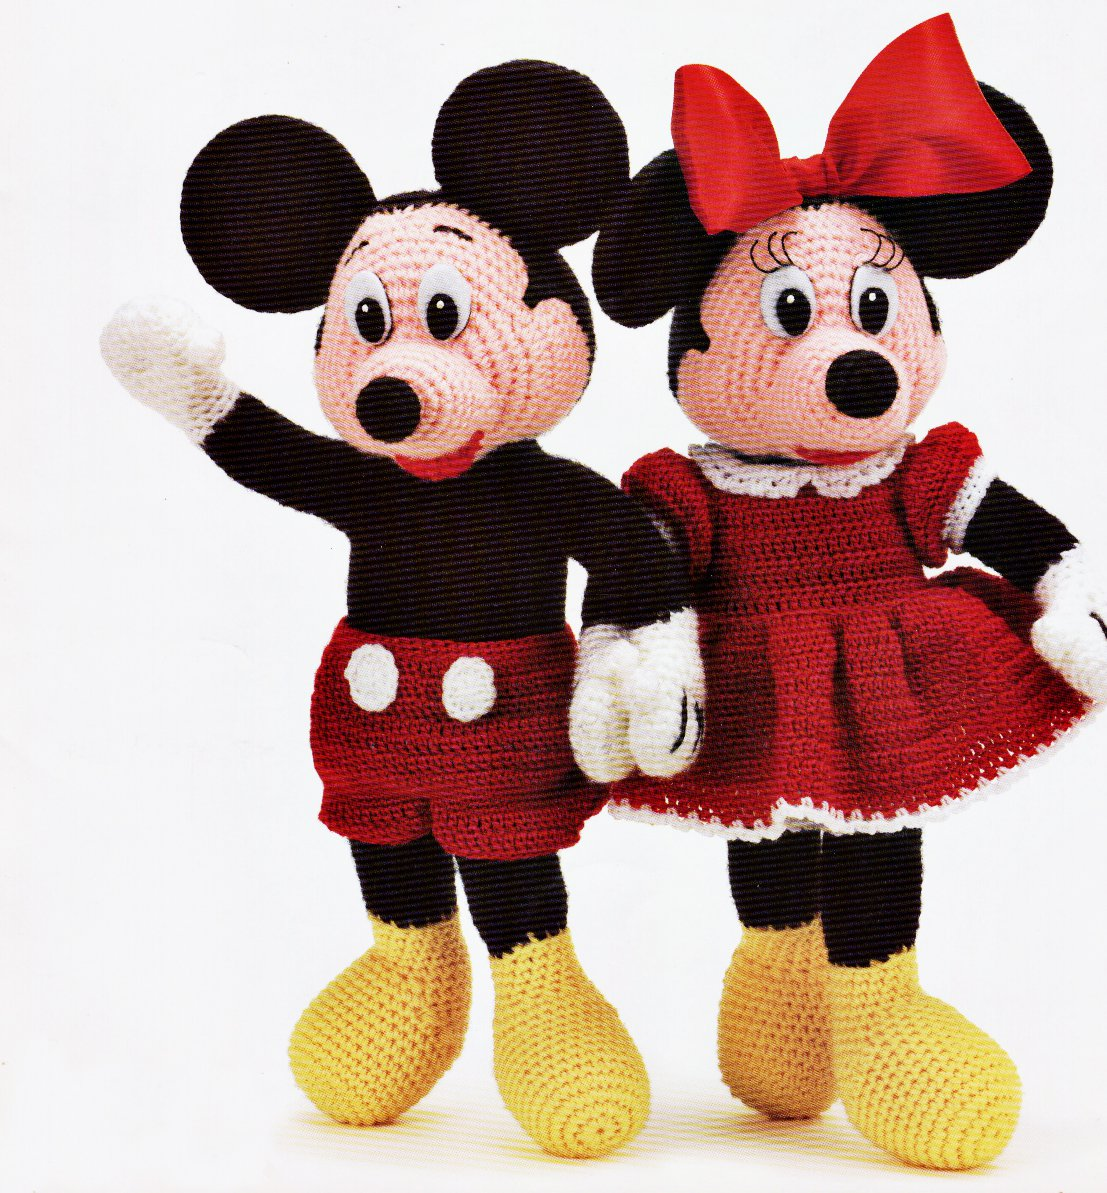 Crochet Rose Diagrams Videos Ask Answer Wiring Diagram Flower With Buddiagram Pinterest Hot Sale Ebook Mickey And Minnie Mouse Pdf Pattern Slipper Beginners Roses